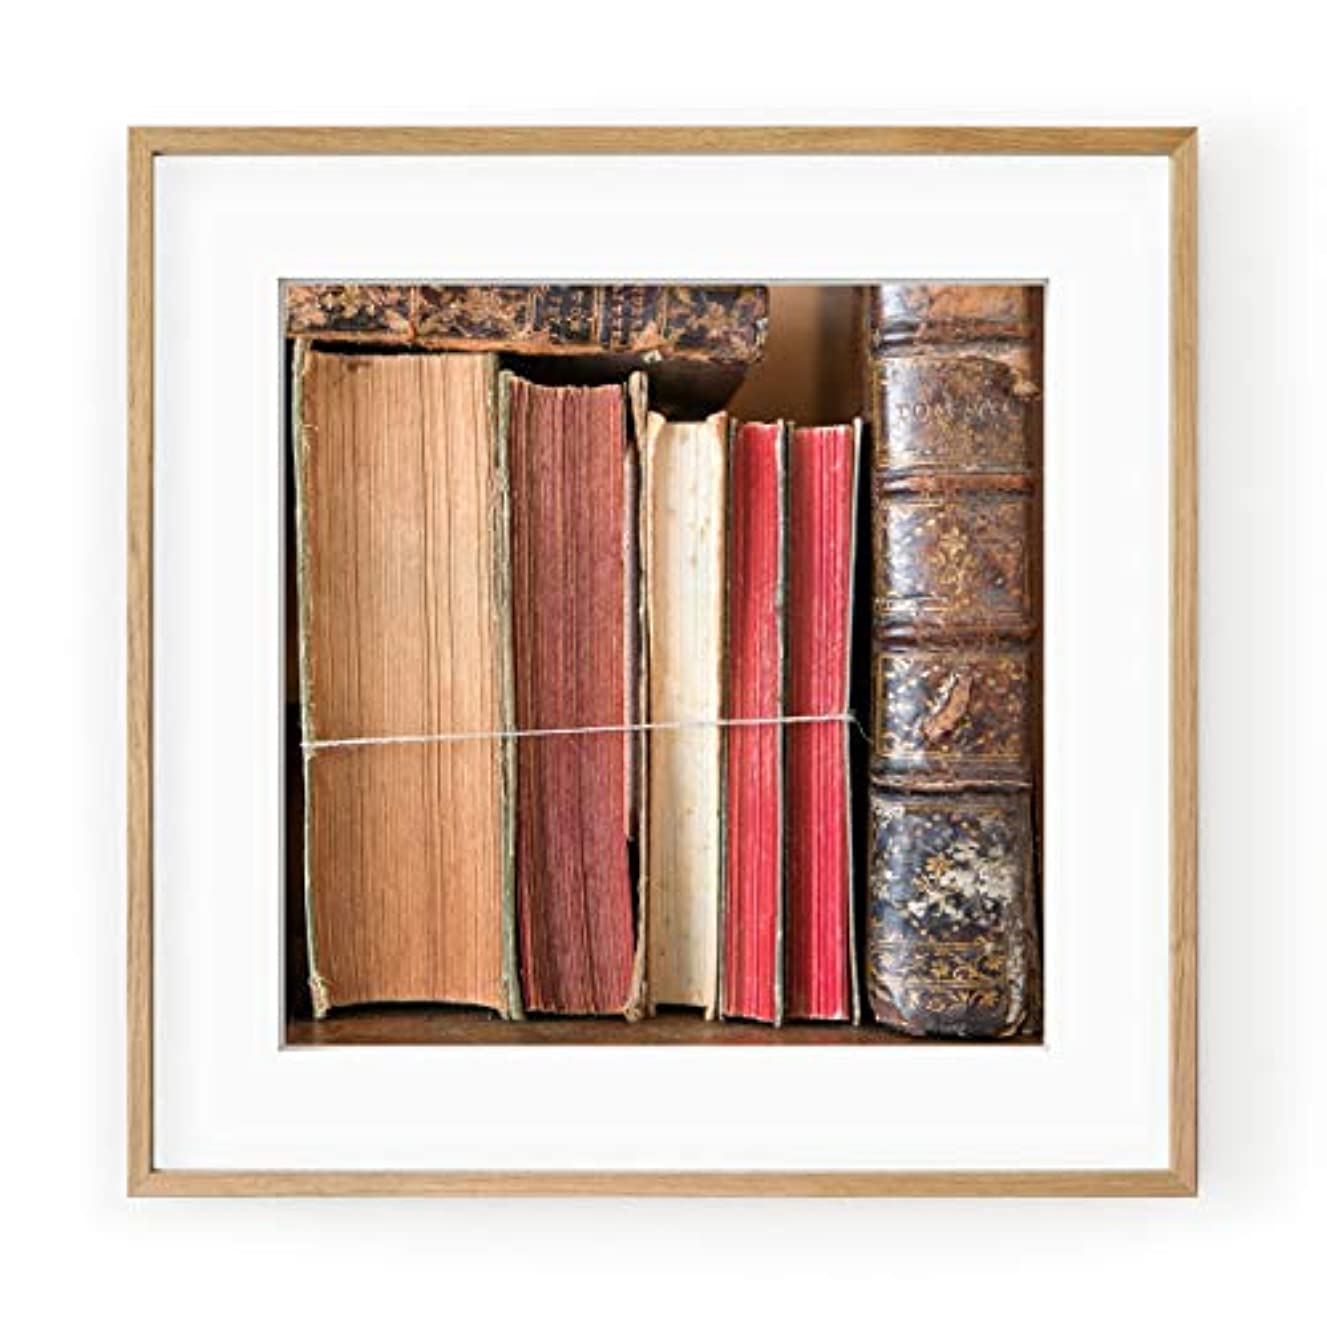 Old Books, Solid Oak Natural Frame, with Mount, Multicolored, 40x40